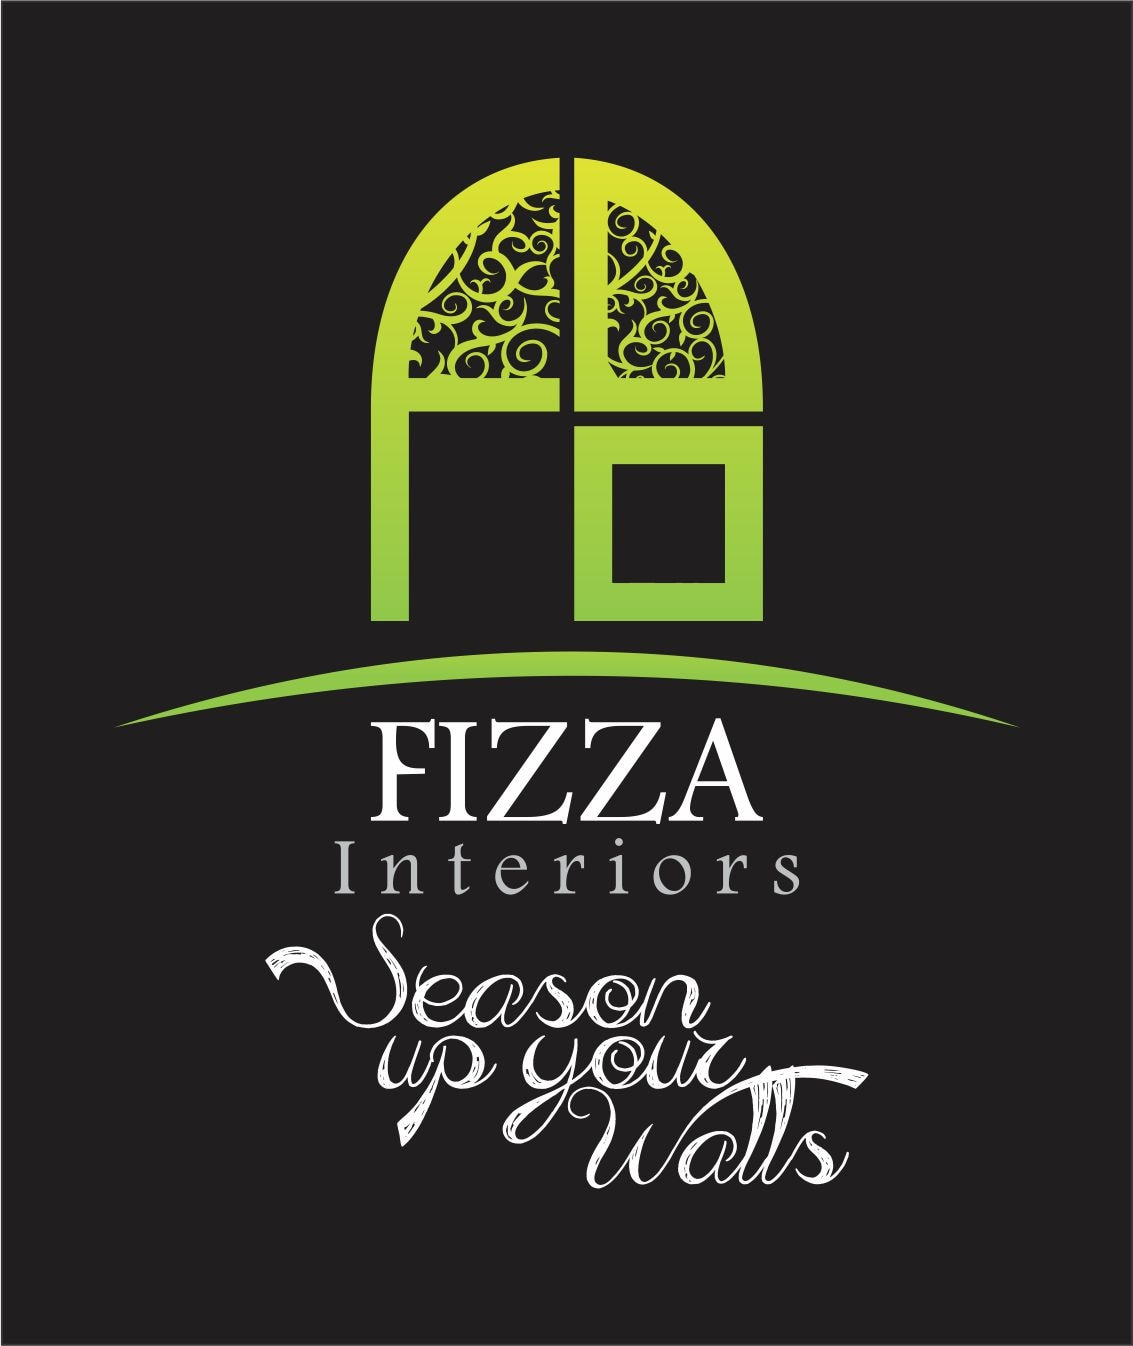 Fizza Interiors And Signage